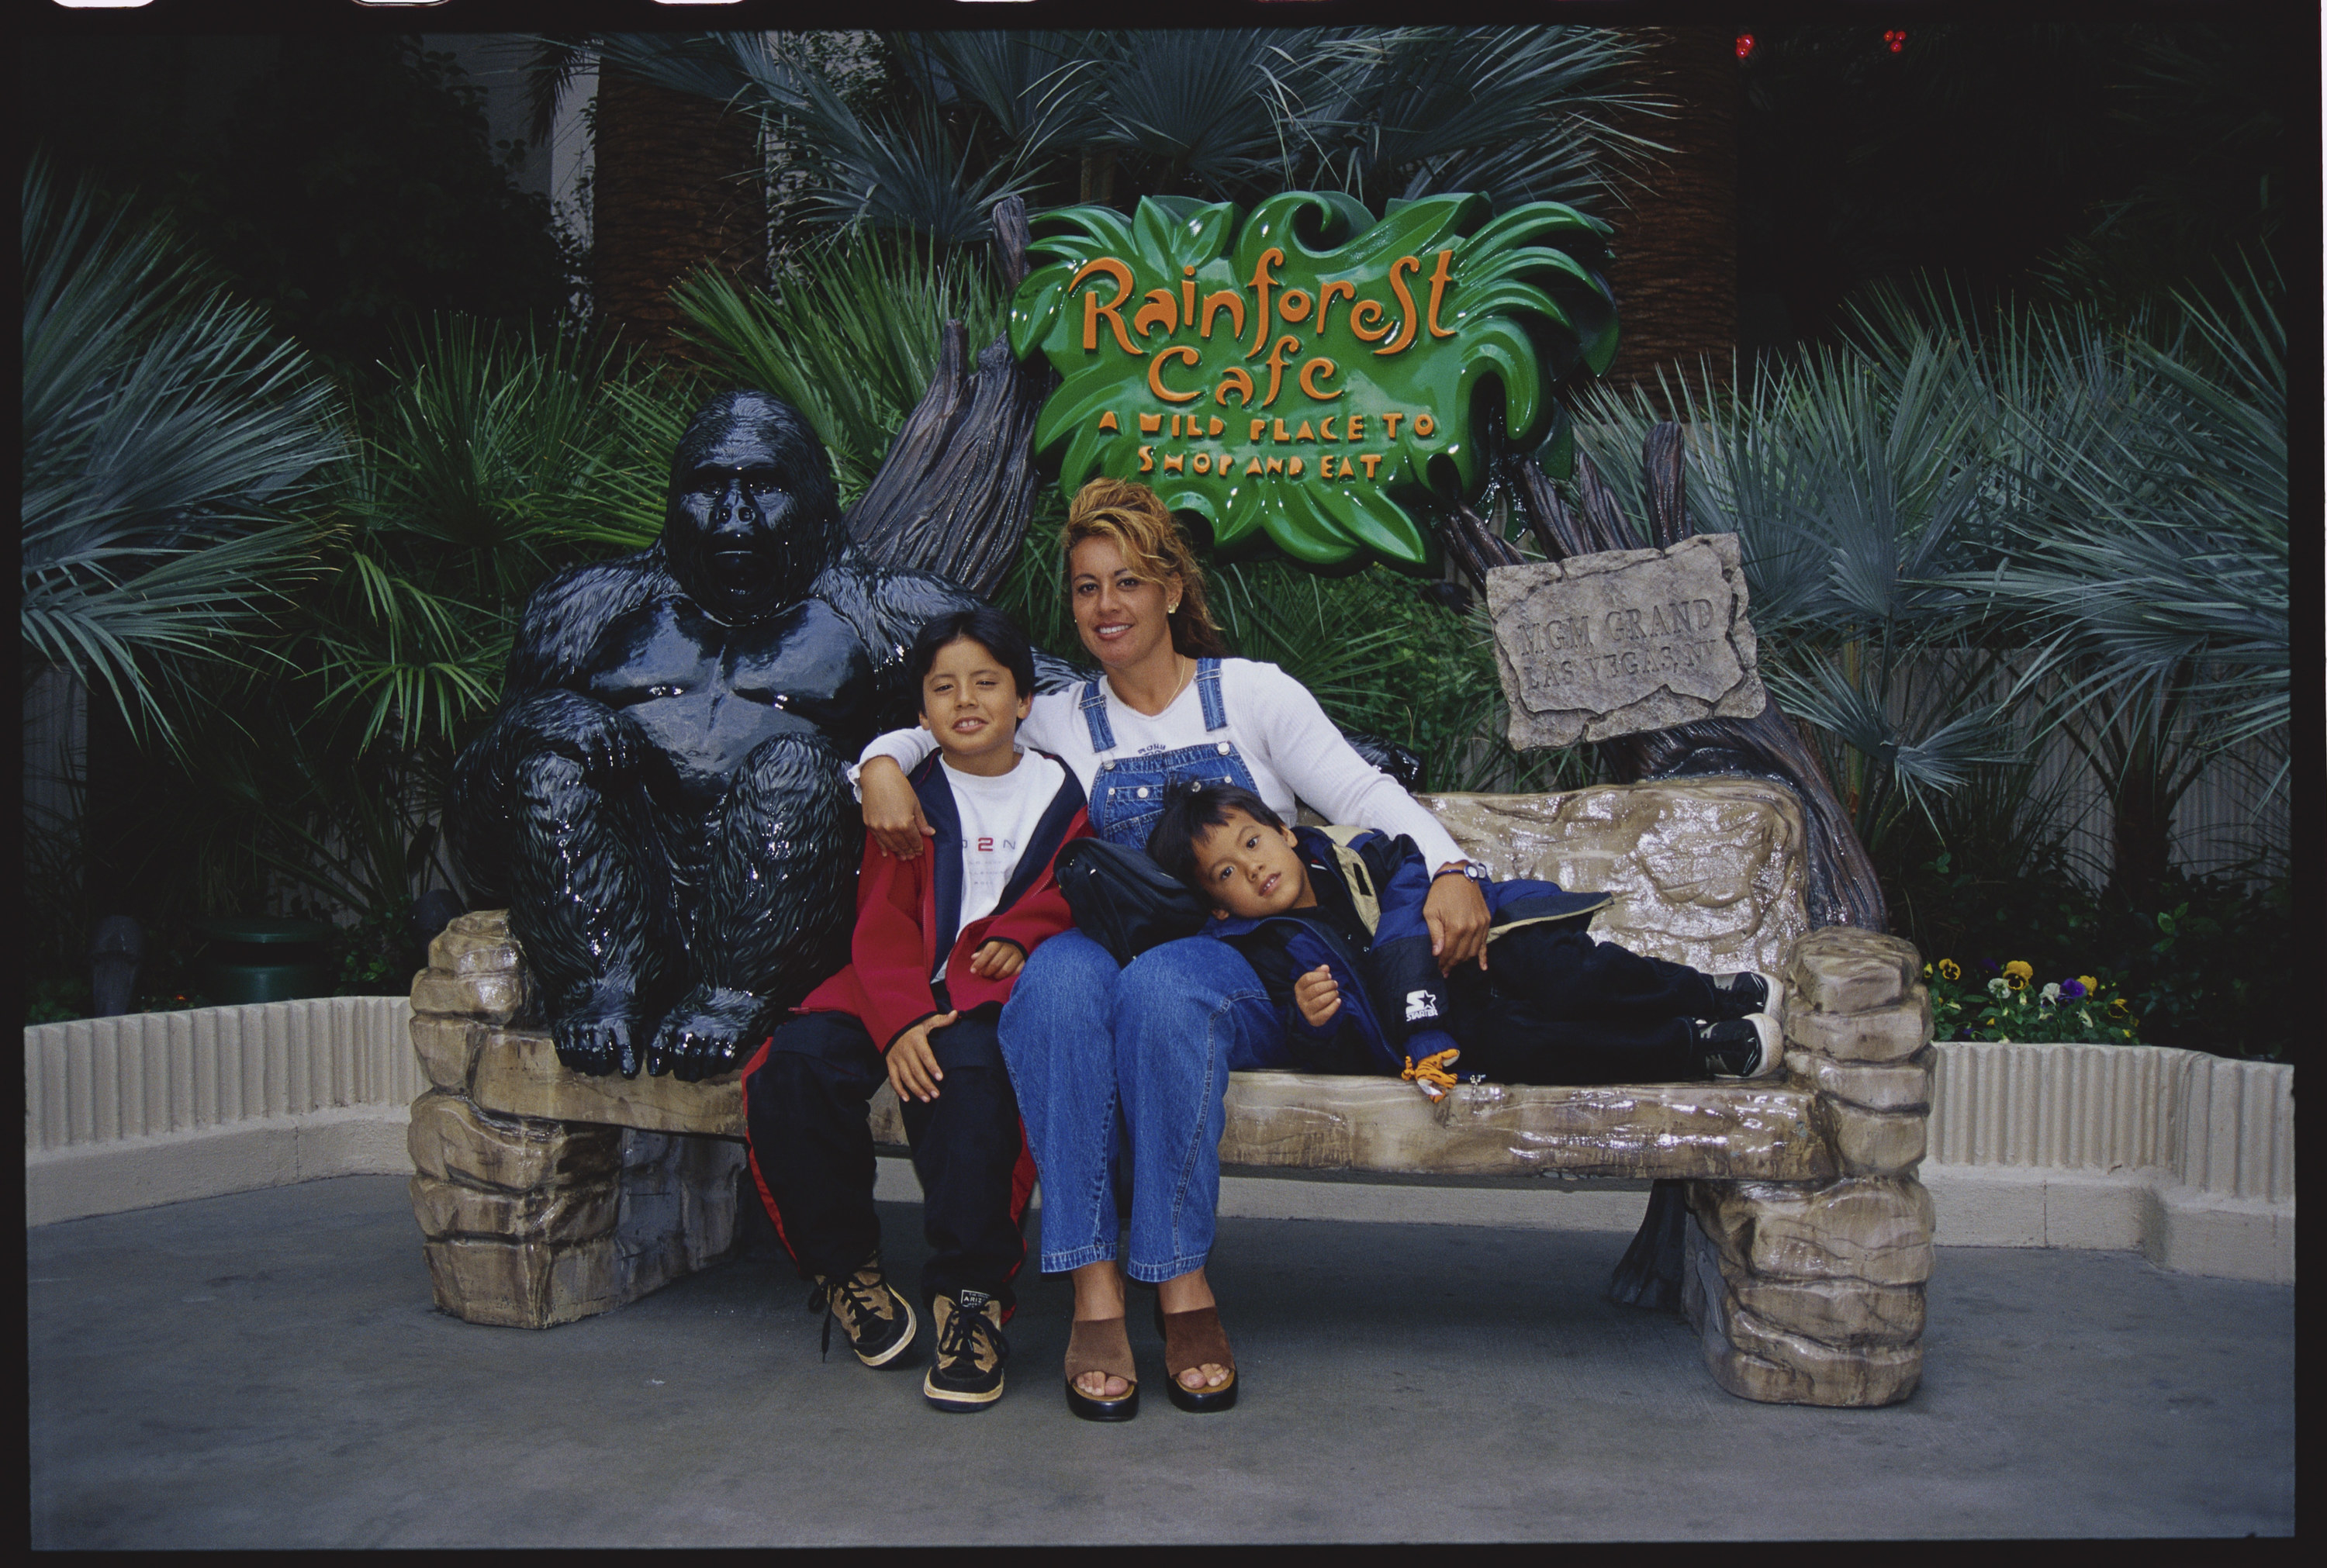 A mom with her two sons posing outside a Rainforest Cafe